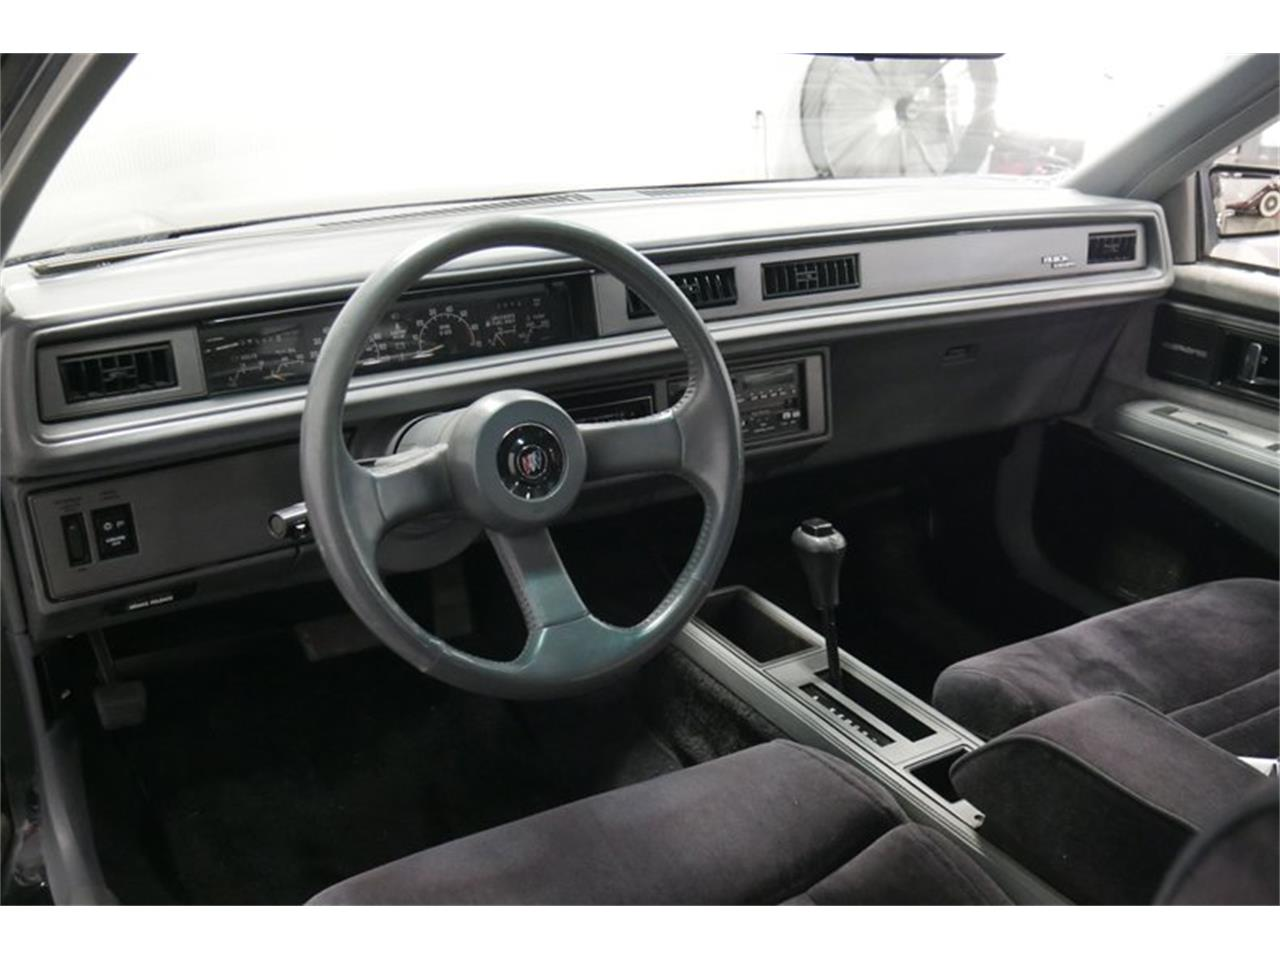 Large Picture of '89 LeSabre located in Tennessee Offered by Streetside Classics - Nashville - QRKK